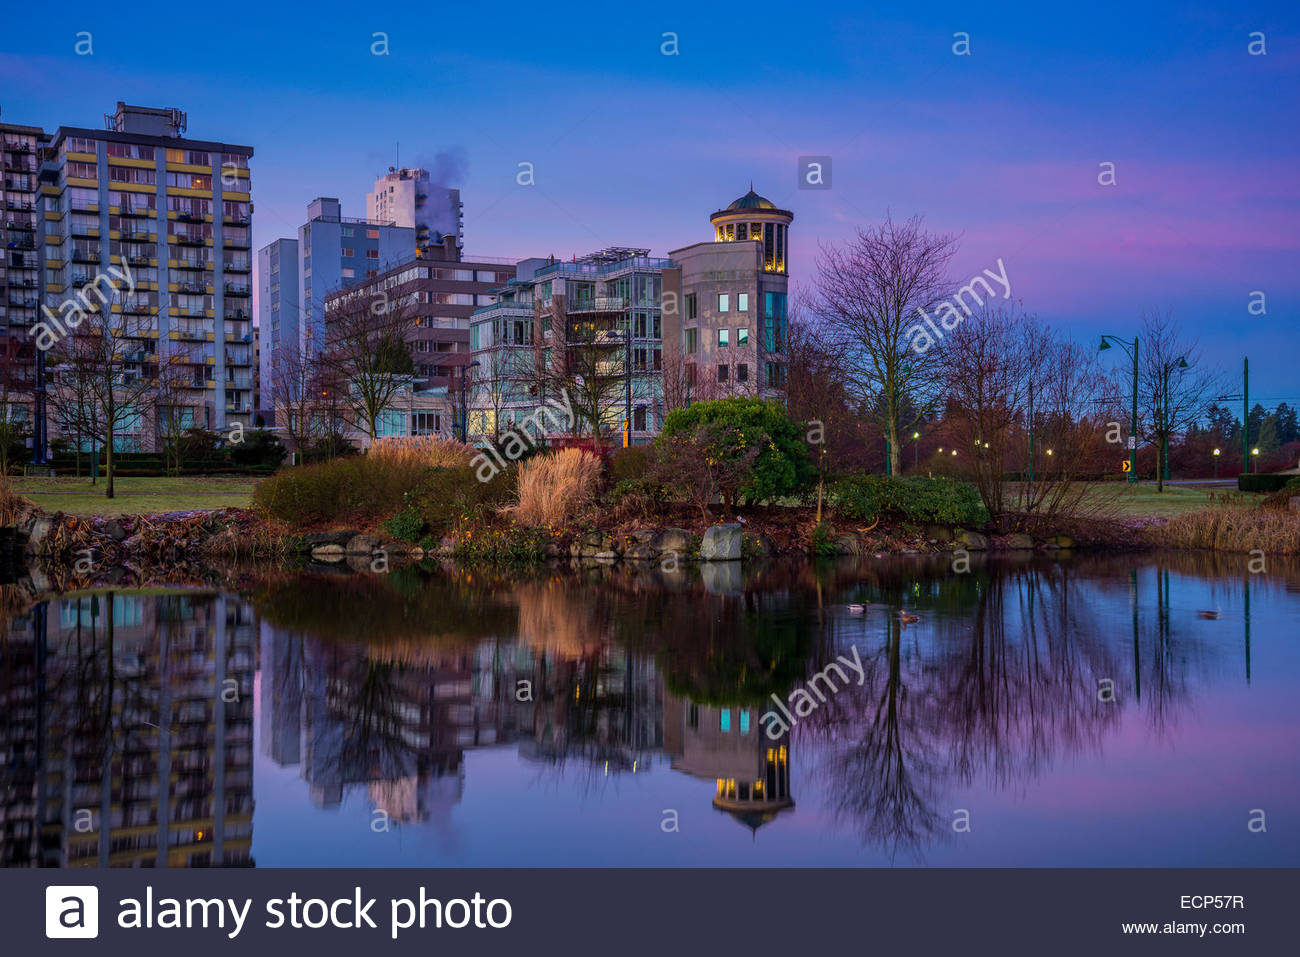 West End Vancouver condos reflected in pond at Devonian Harbour Park, Vancouver, British Columbia, Canada - Stock Image